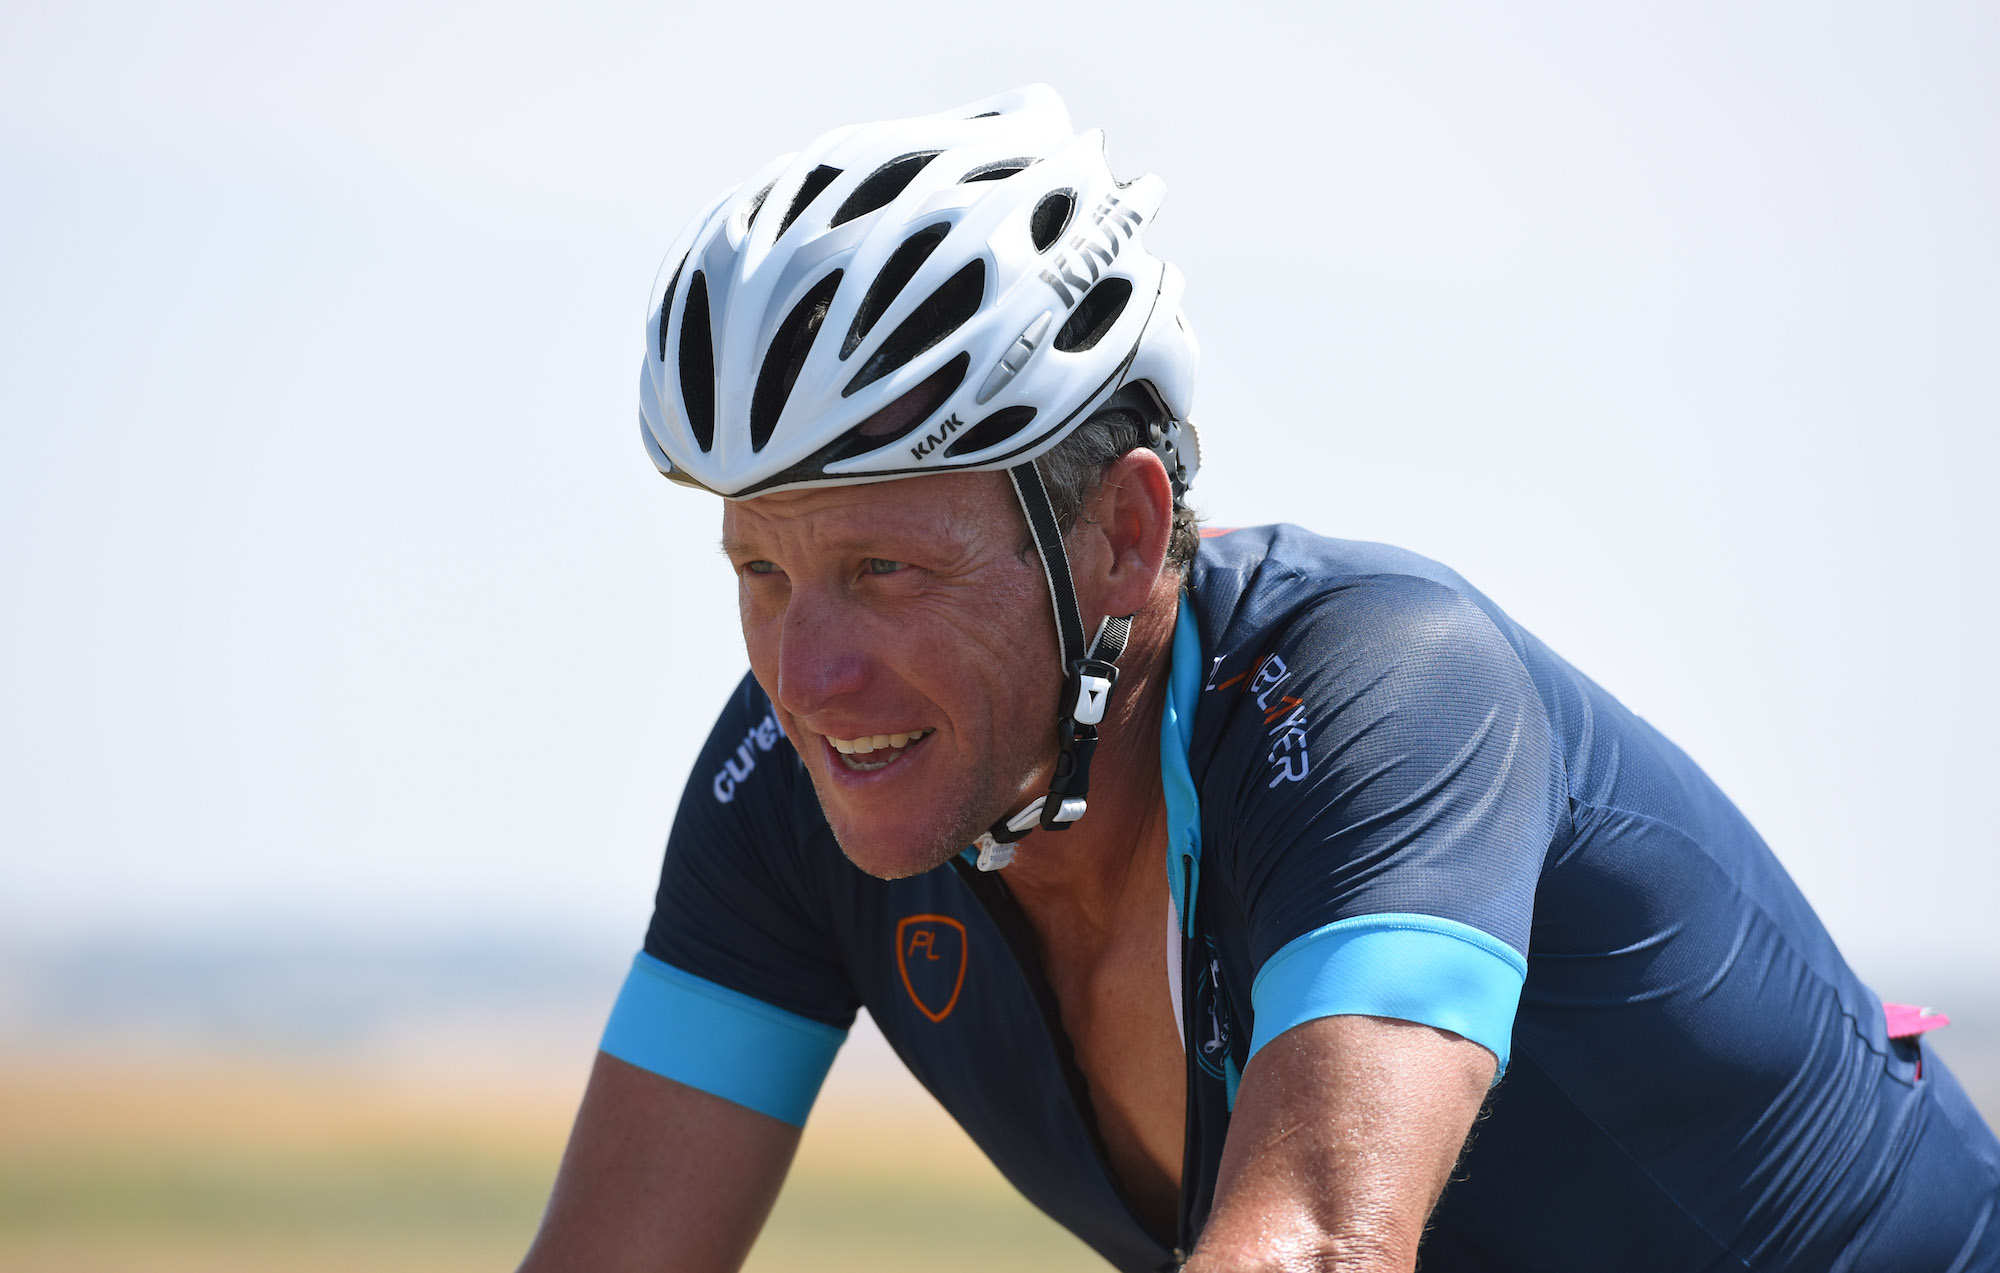 Lance Armstrong is hosting a Mallorca cycling tour with tickets costing $30,000